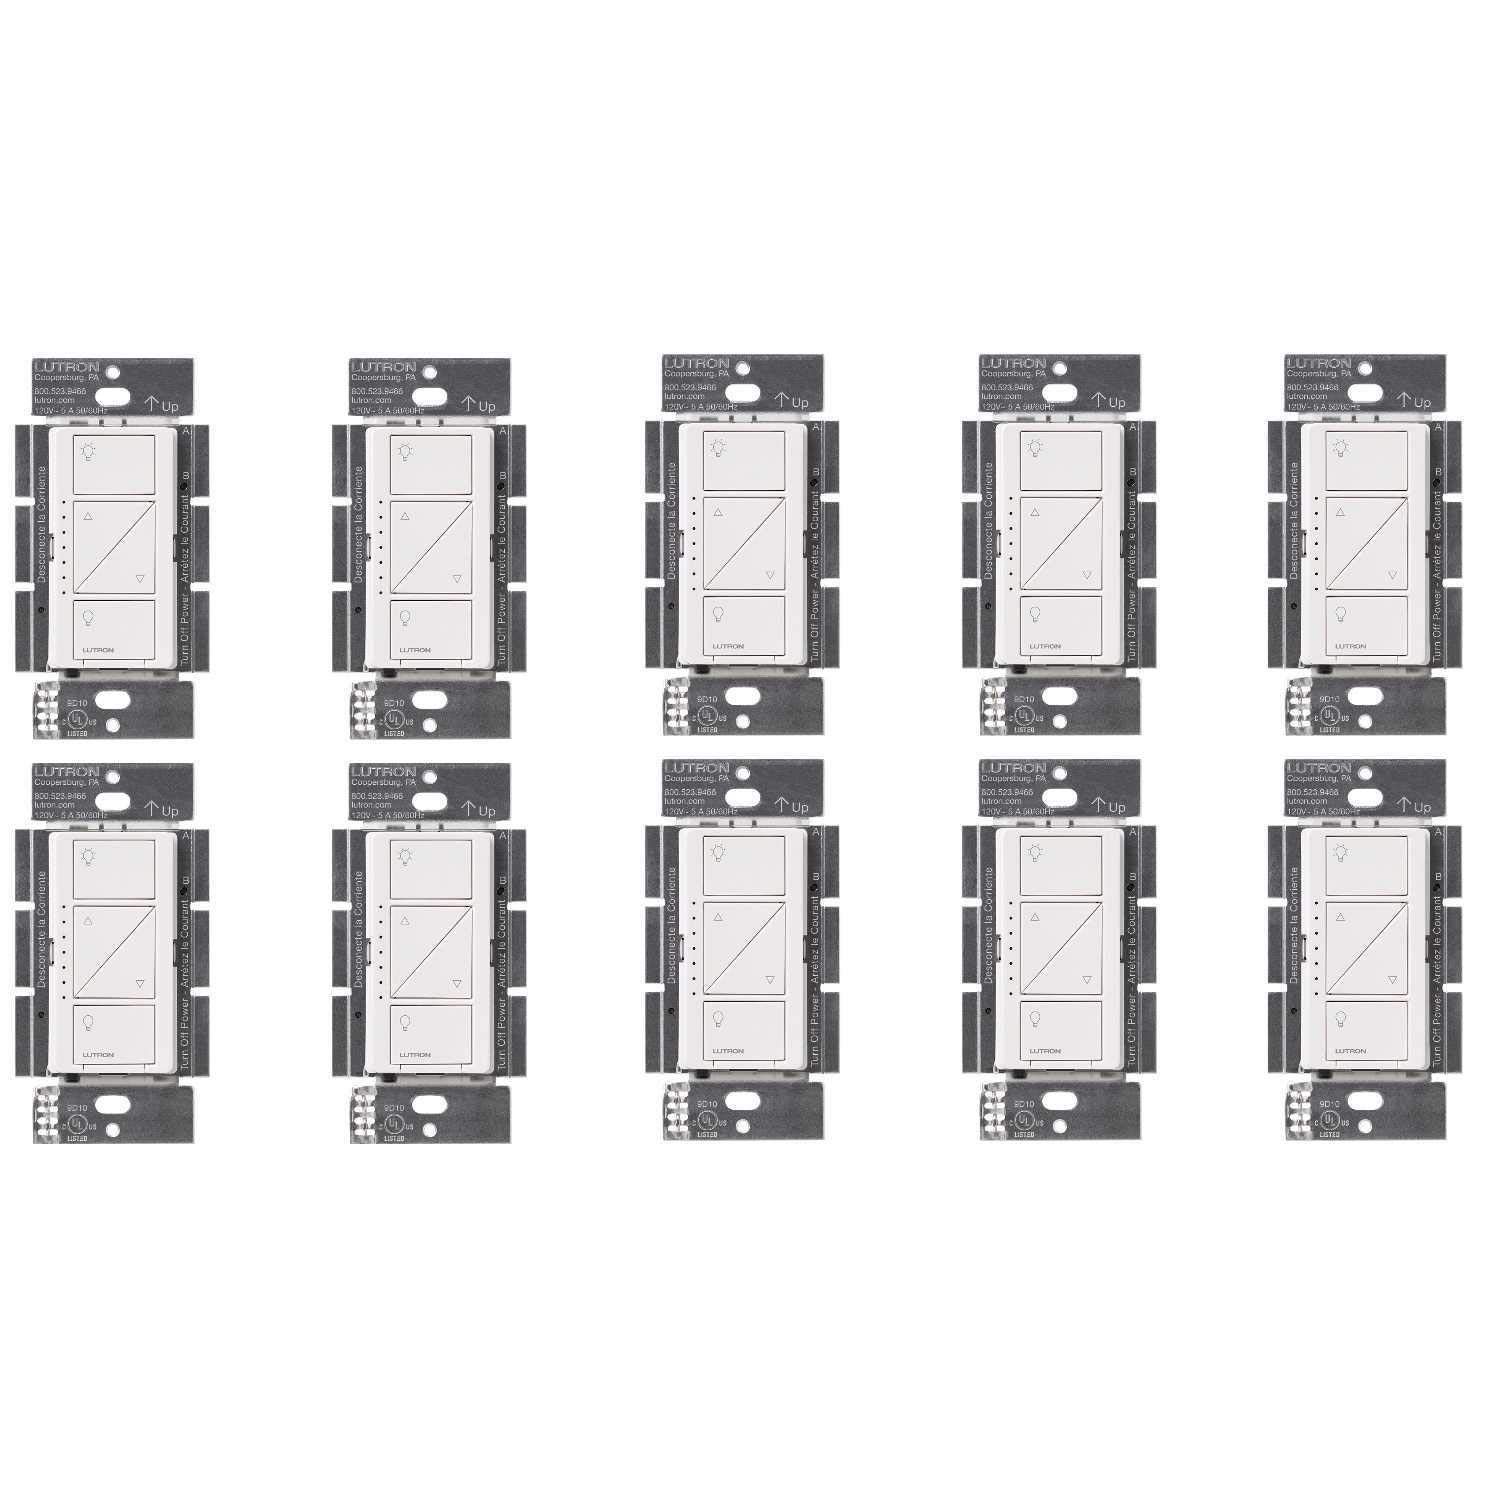 Lutron PD-6WCL-WH Caseta Wireless Smart Lighting Dimmer Switch, White (10 Pack) - - Amazon.com